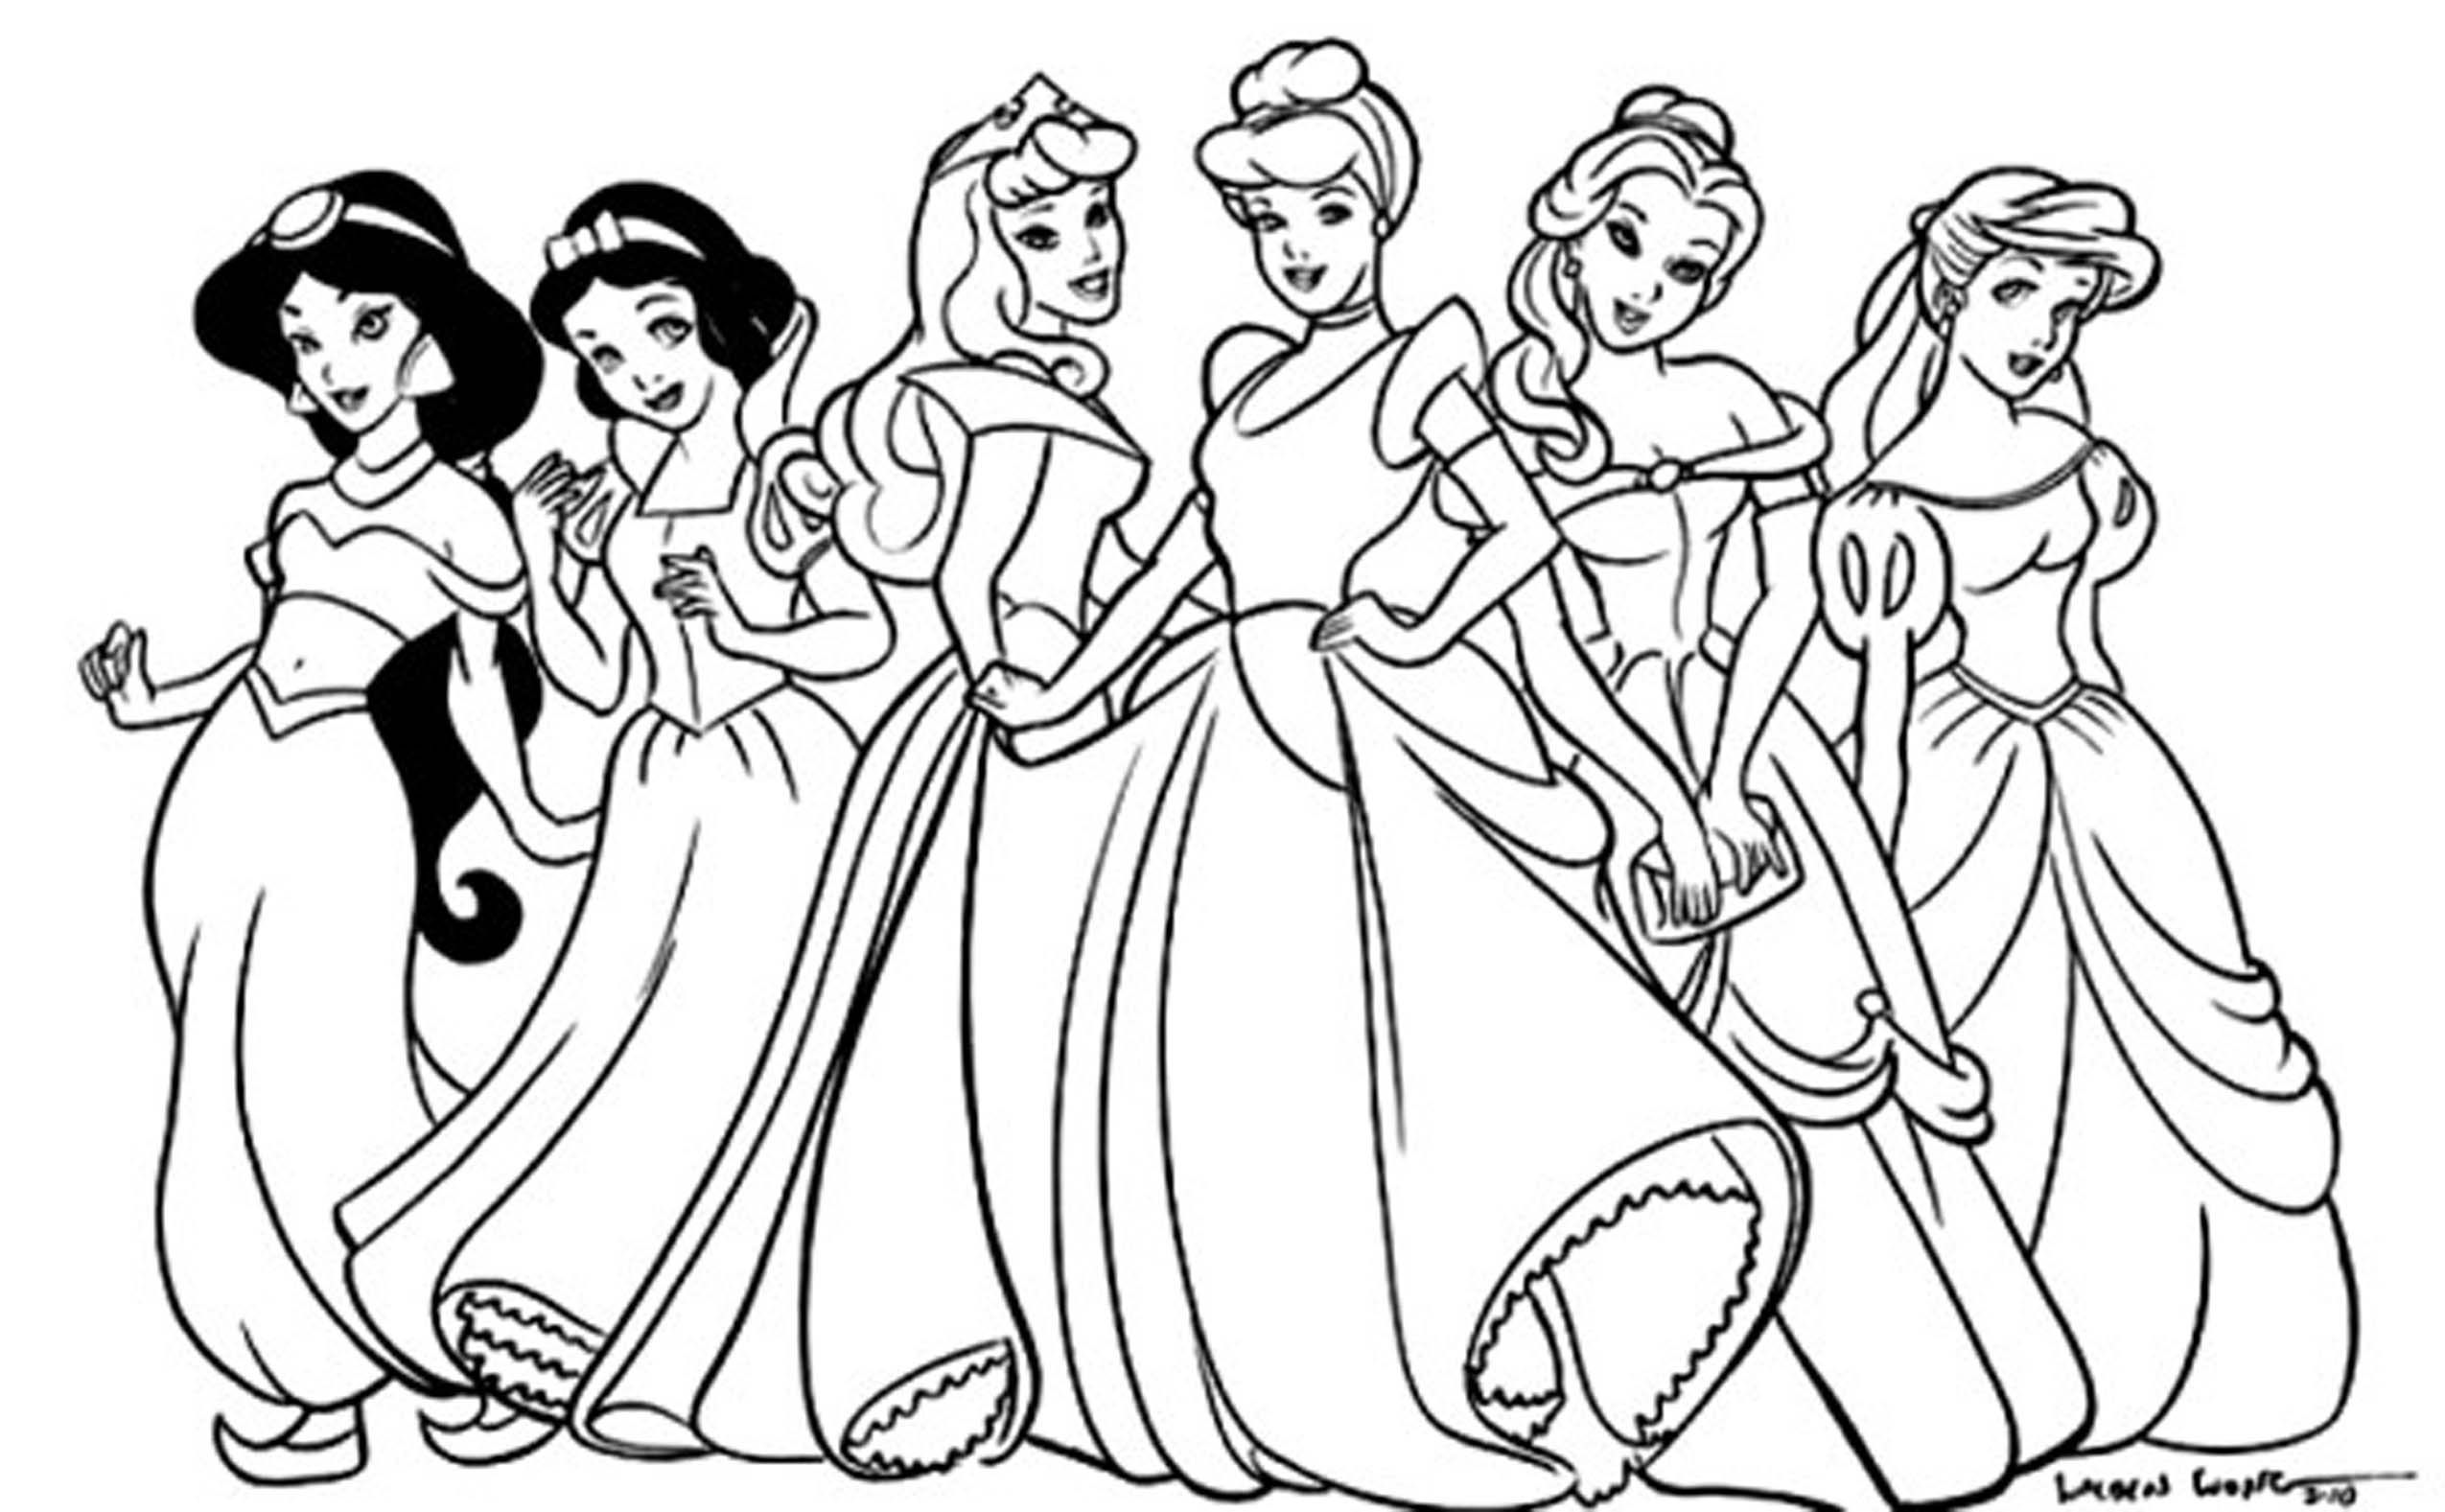 Disney Princess Printable Colouring Pages | Coloring Pages ... | all disney princess coloring pages printable